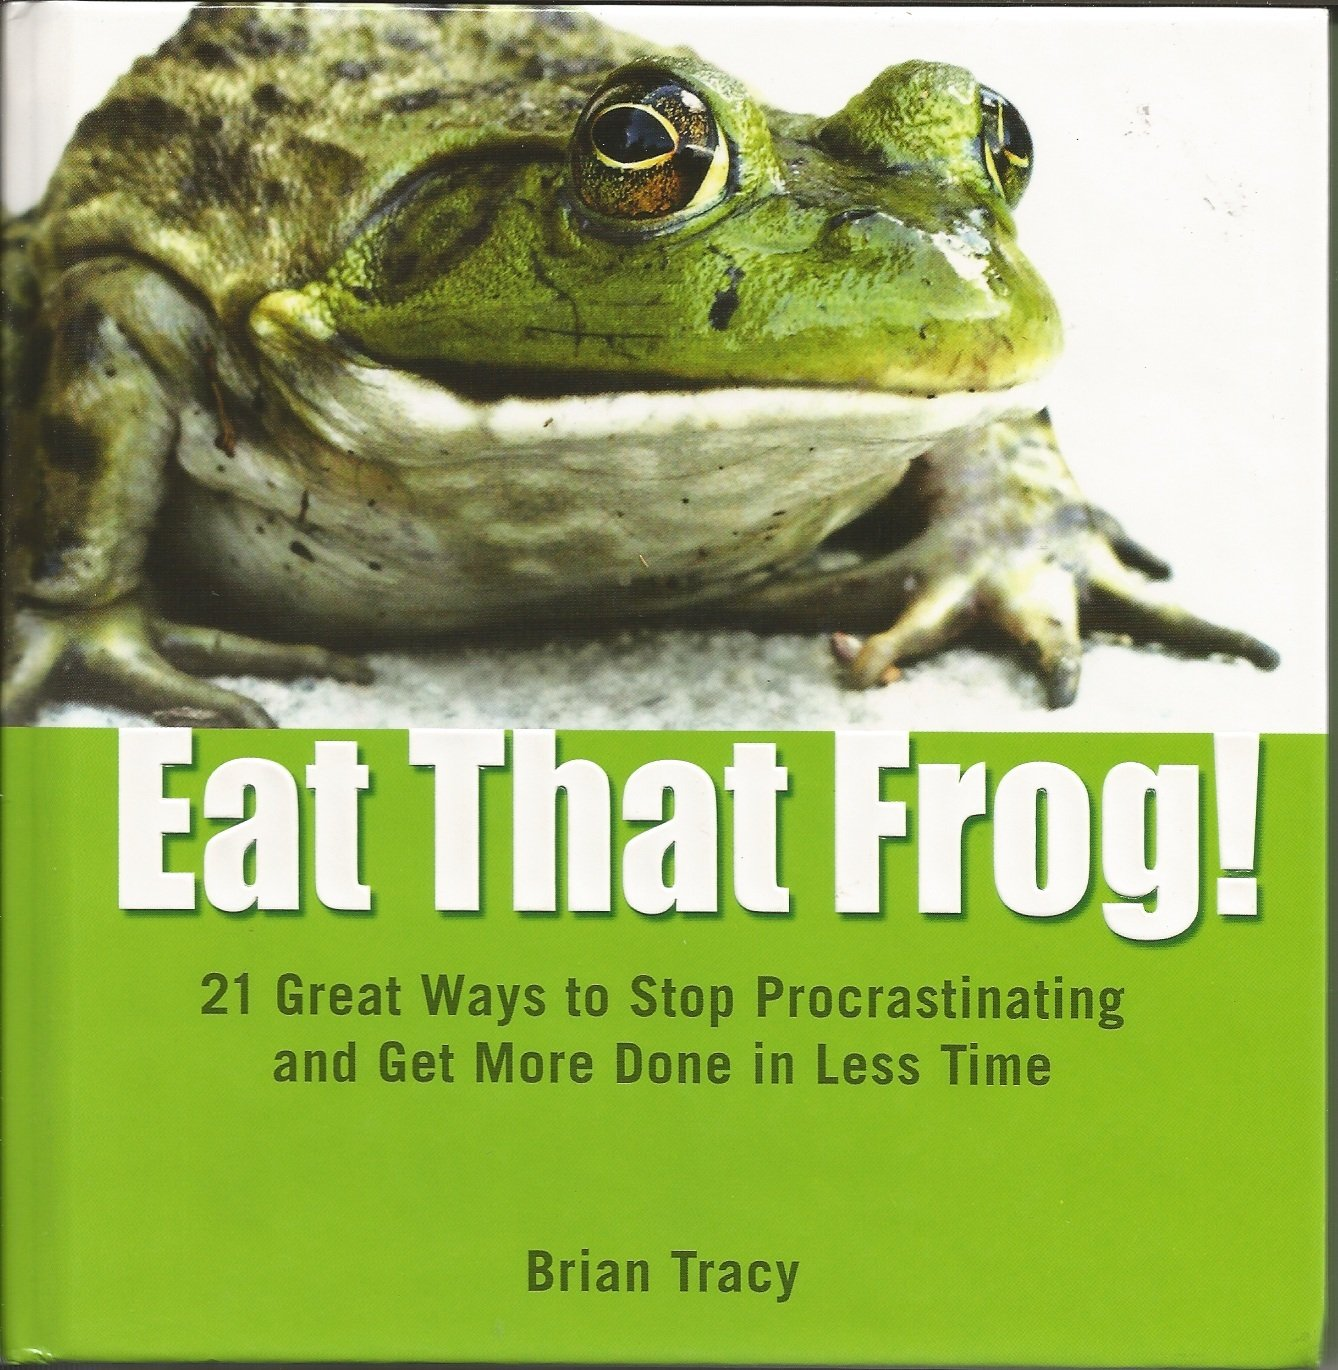 Download Eat That Frog!: 21 Great Ways to Stop Procrastinating and Get More Done in Less Time pdf